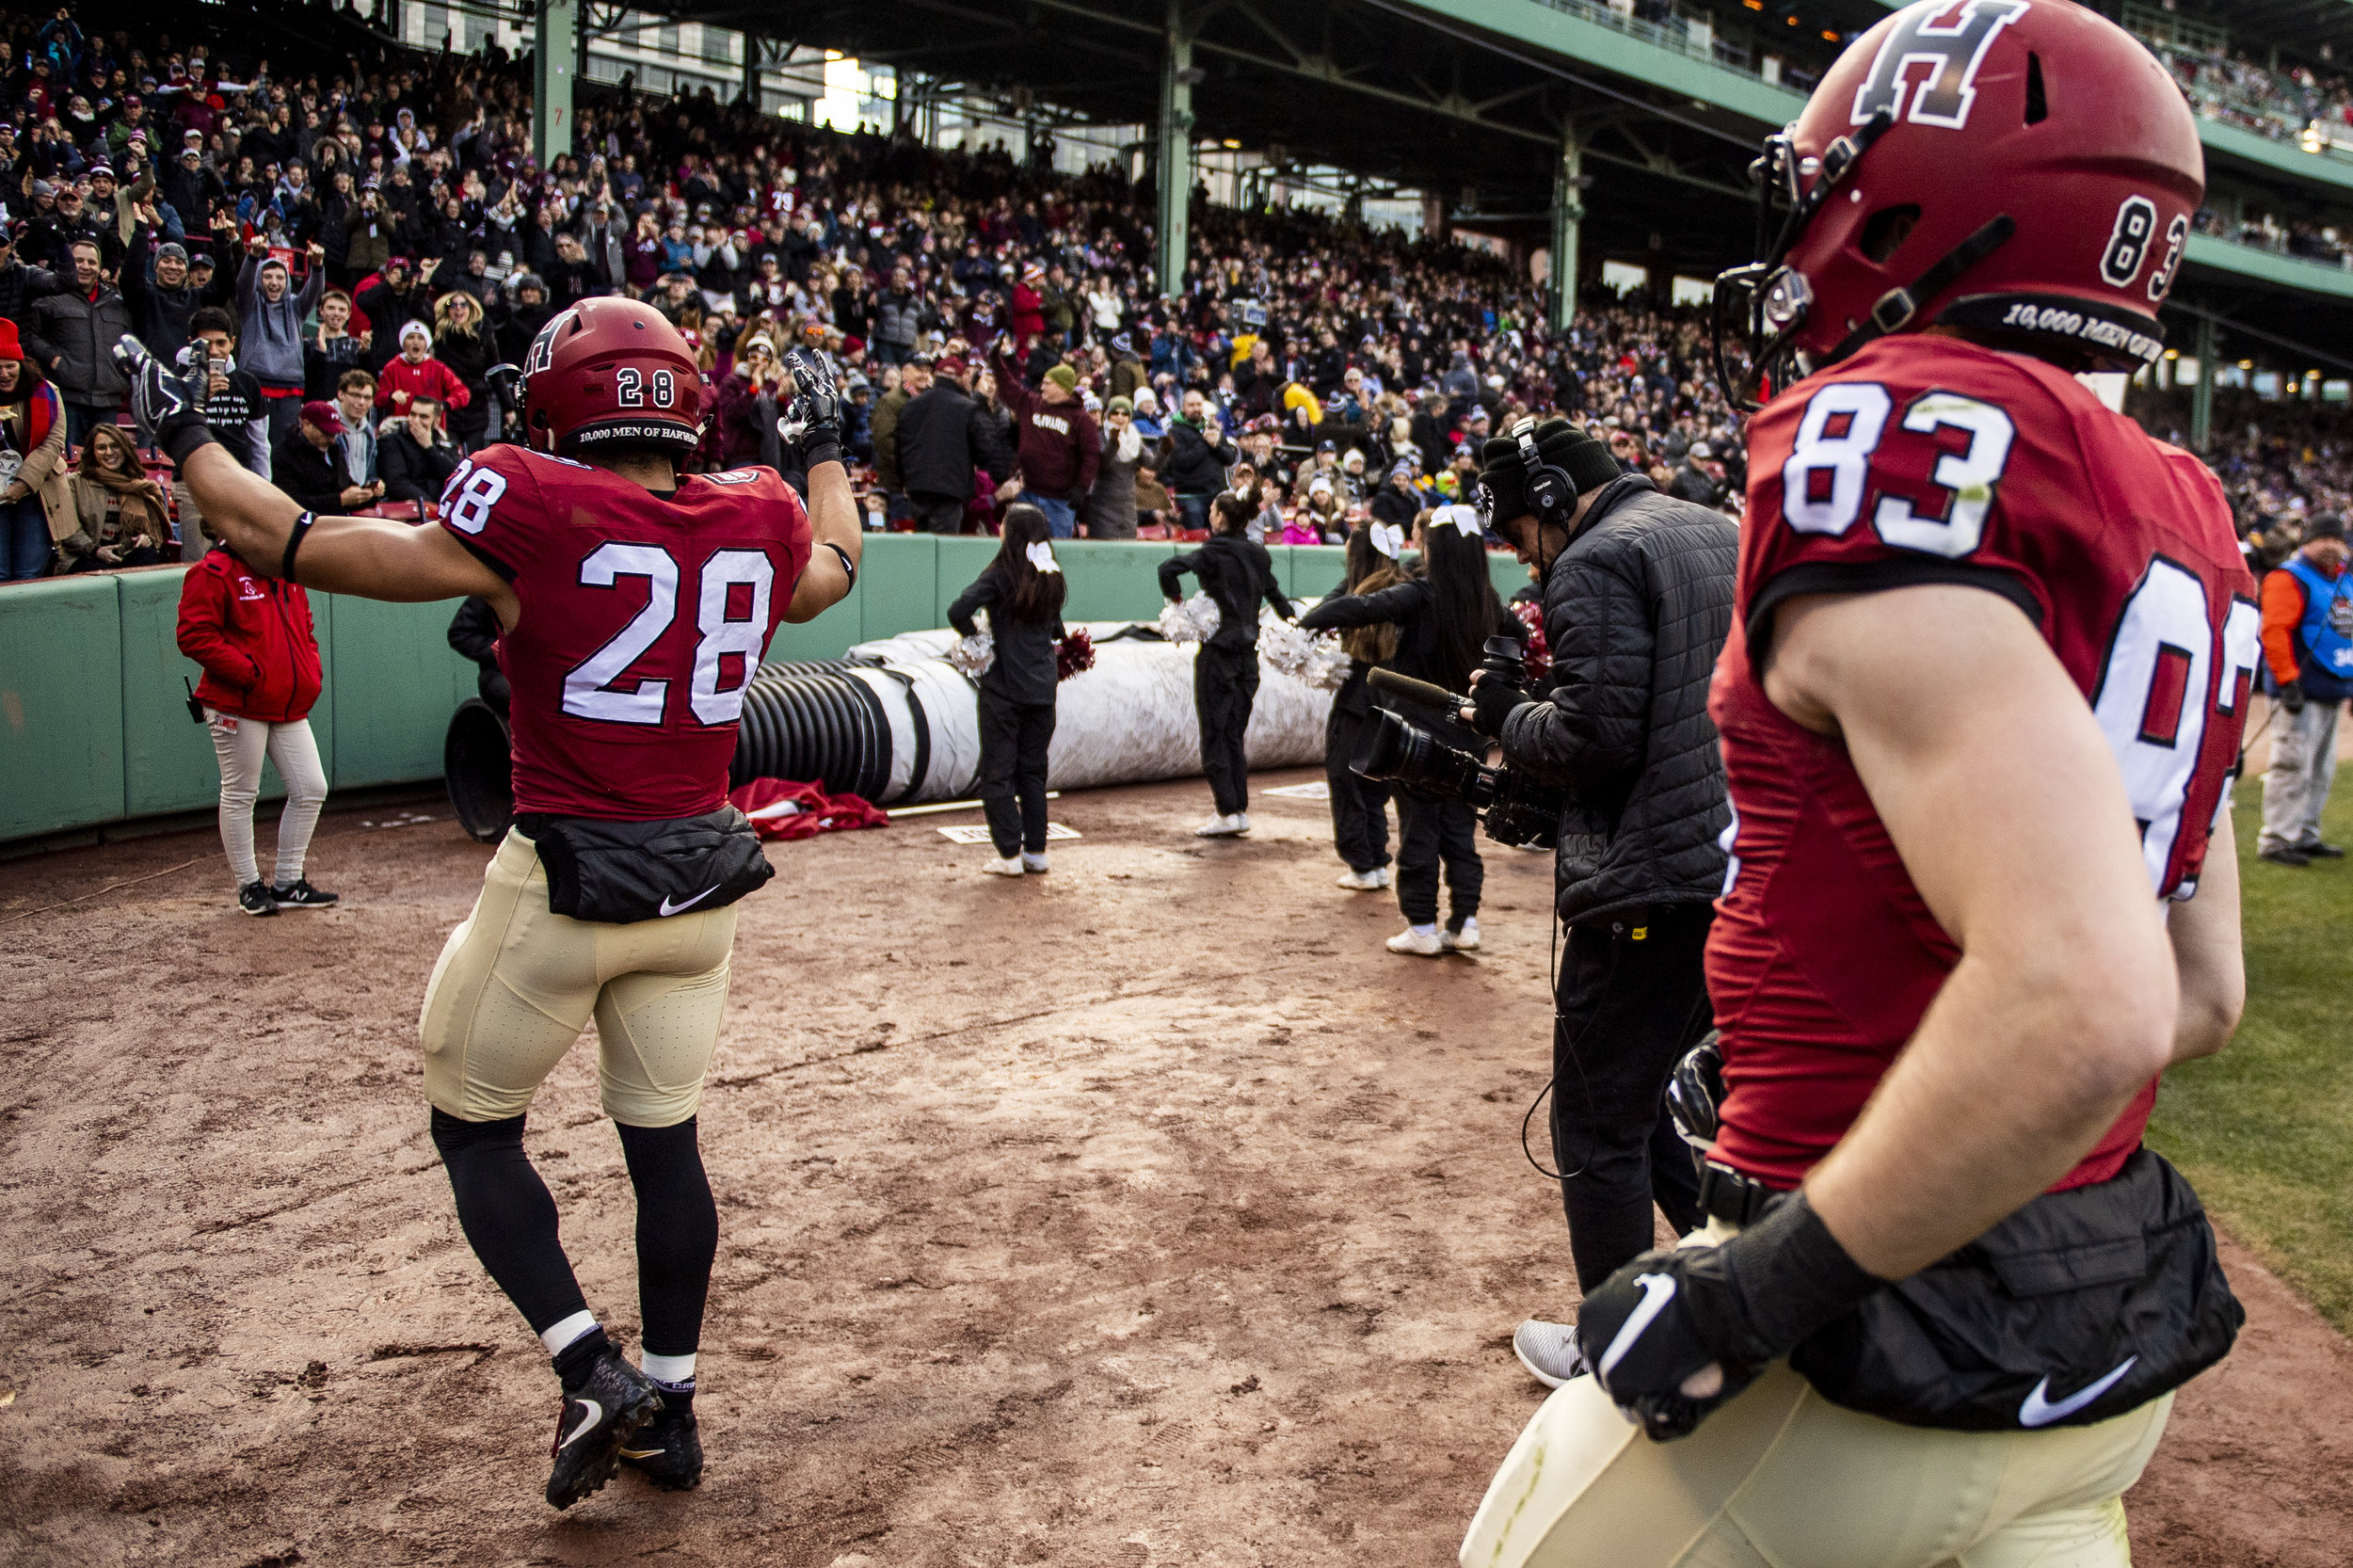 November 16, 2018, Boston, MA: A Harvard football celebrates a touchdown during the Harvard University and Yale University football Game at Fenway Park in Boston, Massachusetts on Thursday, November 16, 2018. (Photo by Matthew Thomas/Boston Red Sox)